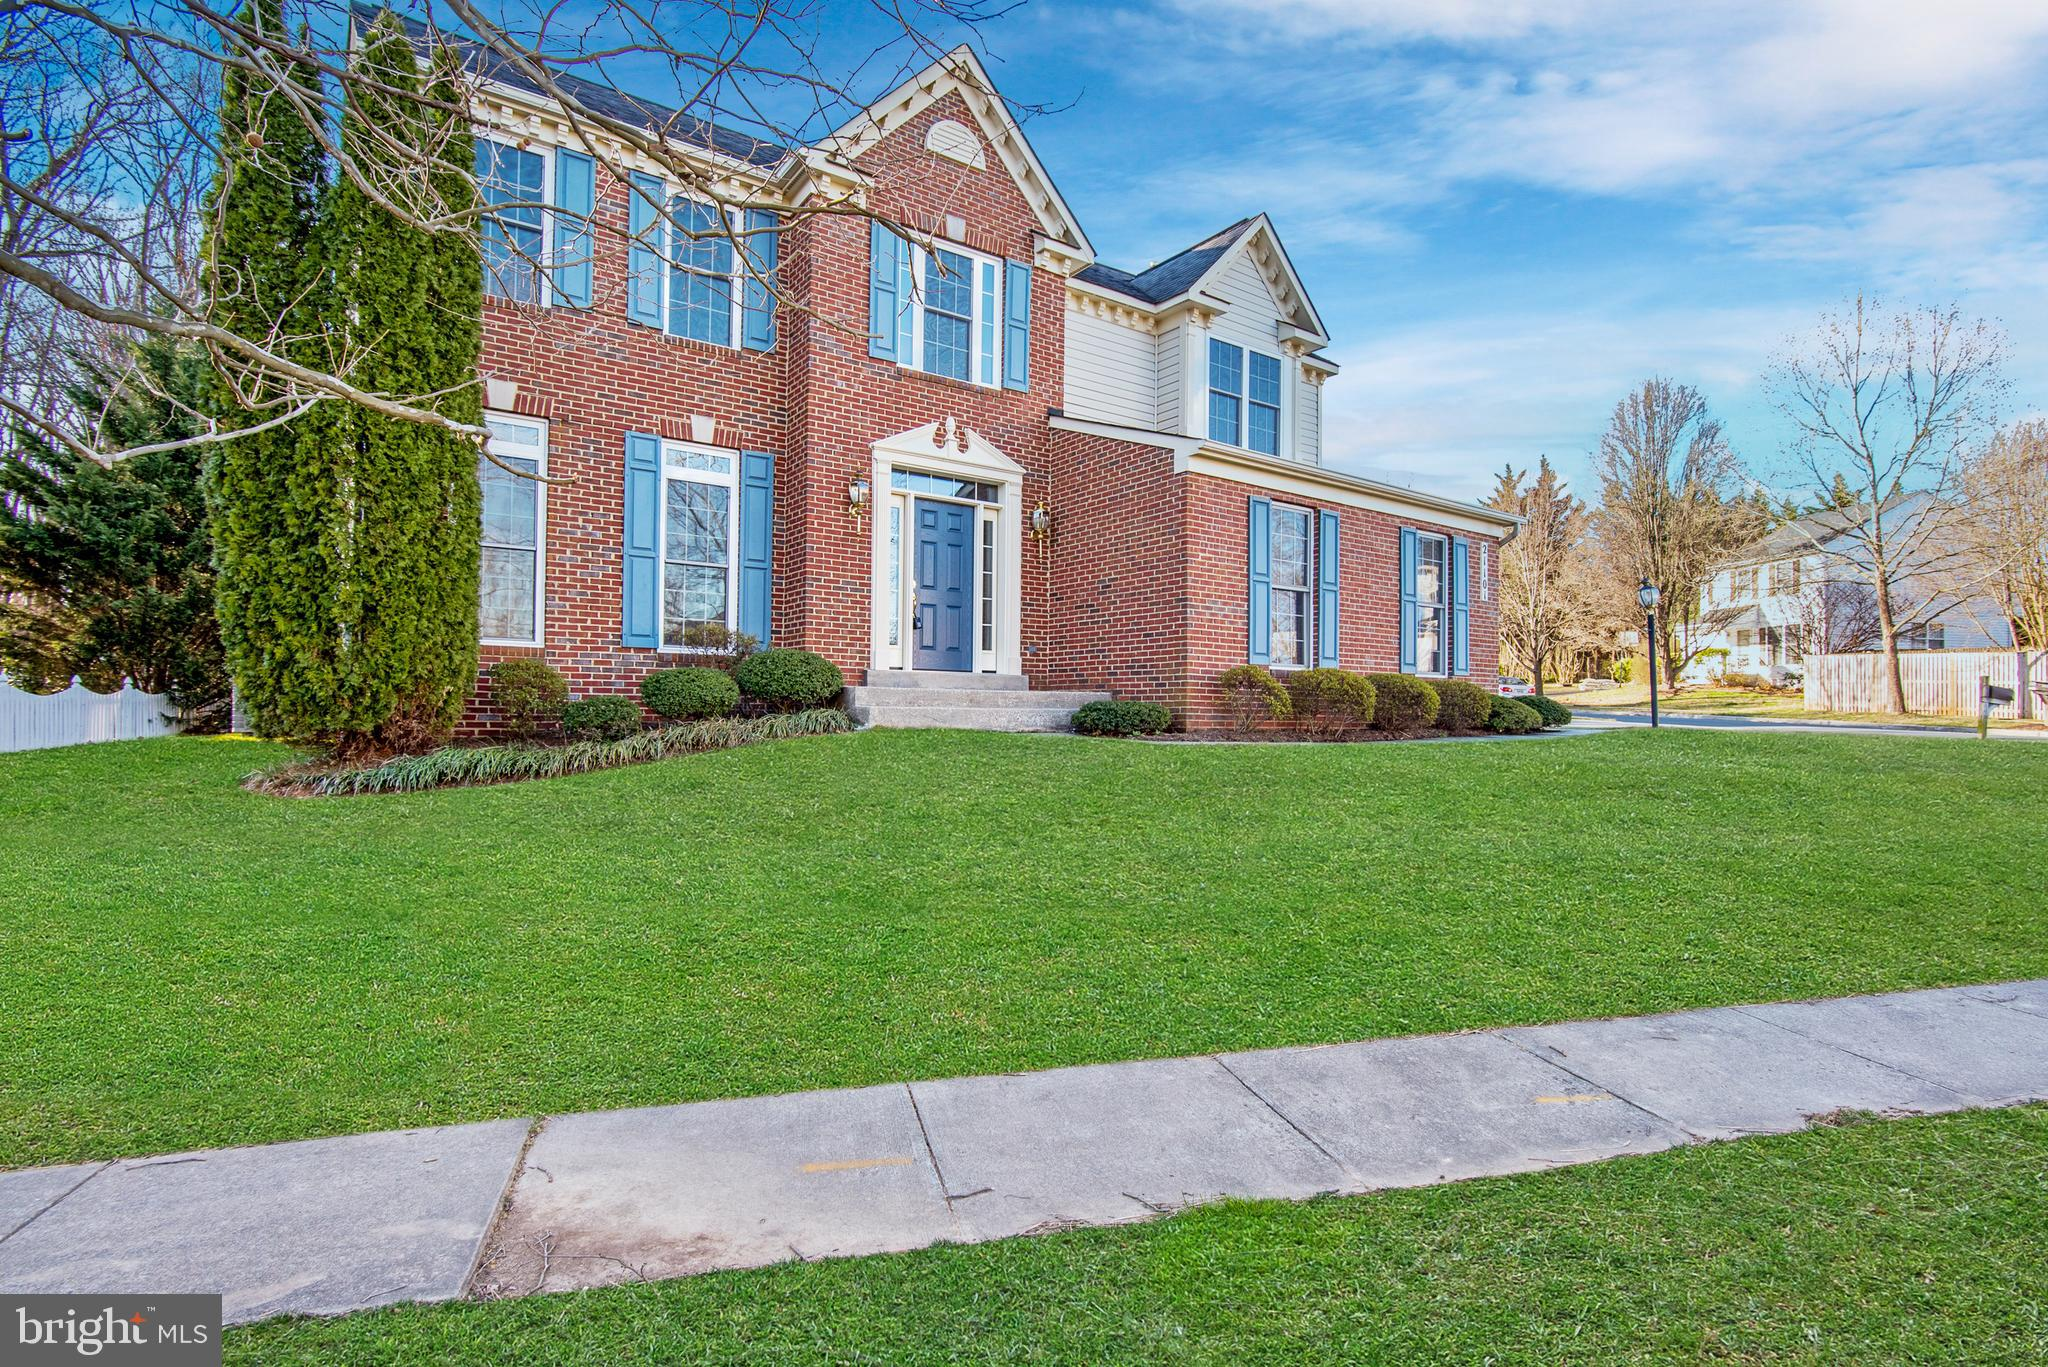 21101 HICKORY FOREST WAY, GERMANTOWN, MD 20876